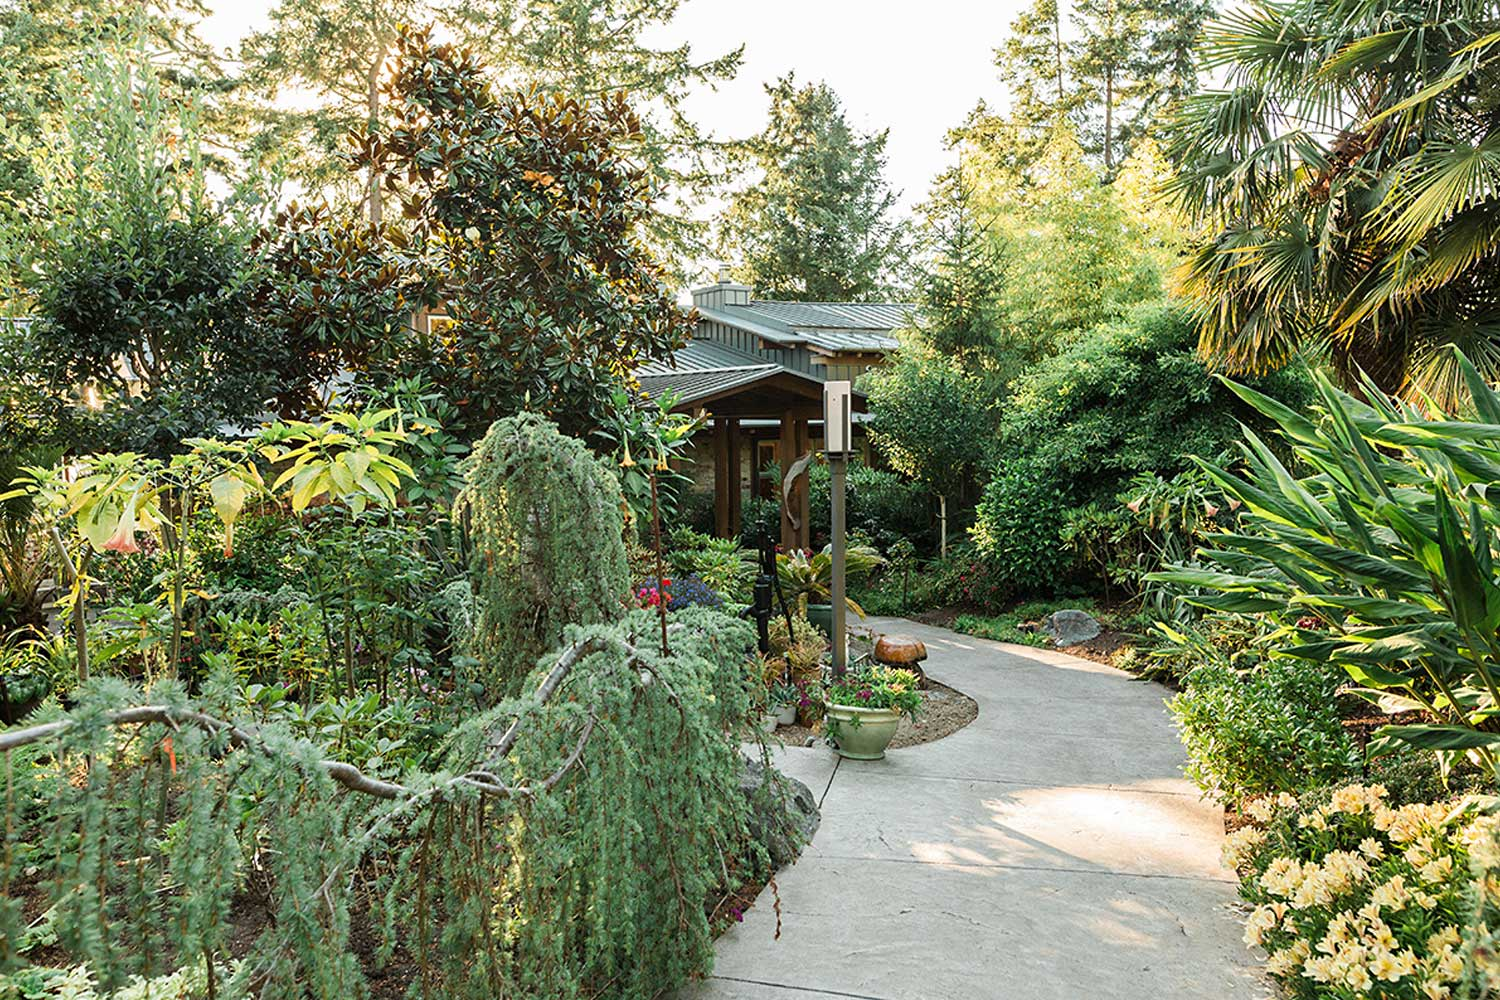 A lush walkway through a manicured garden to the front door of this Sunshine Coast, BC vacation rental.